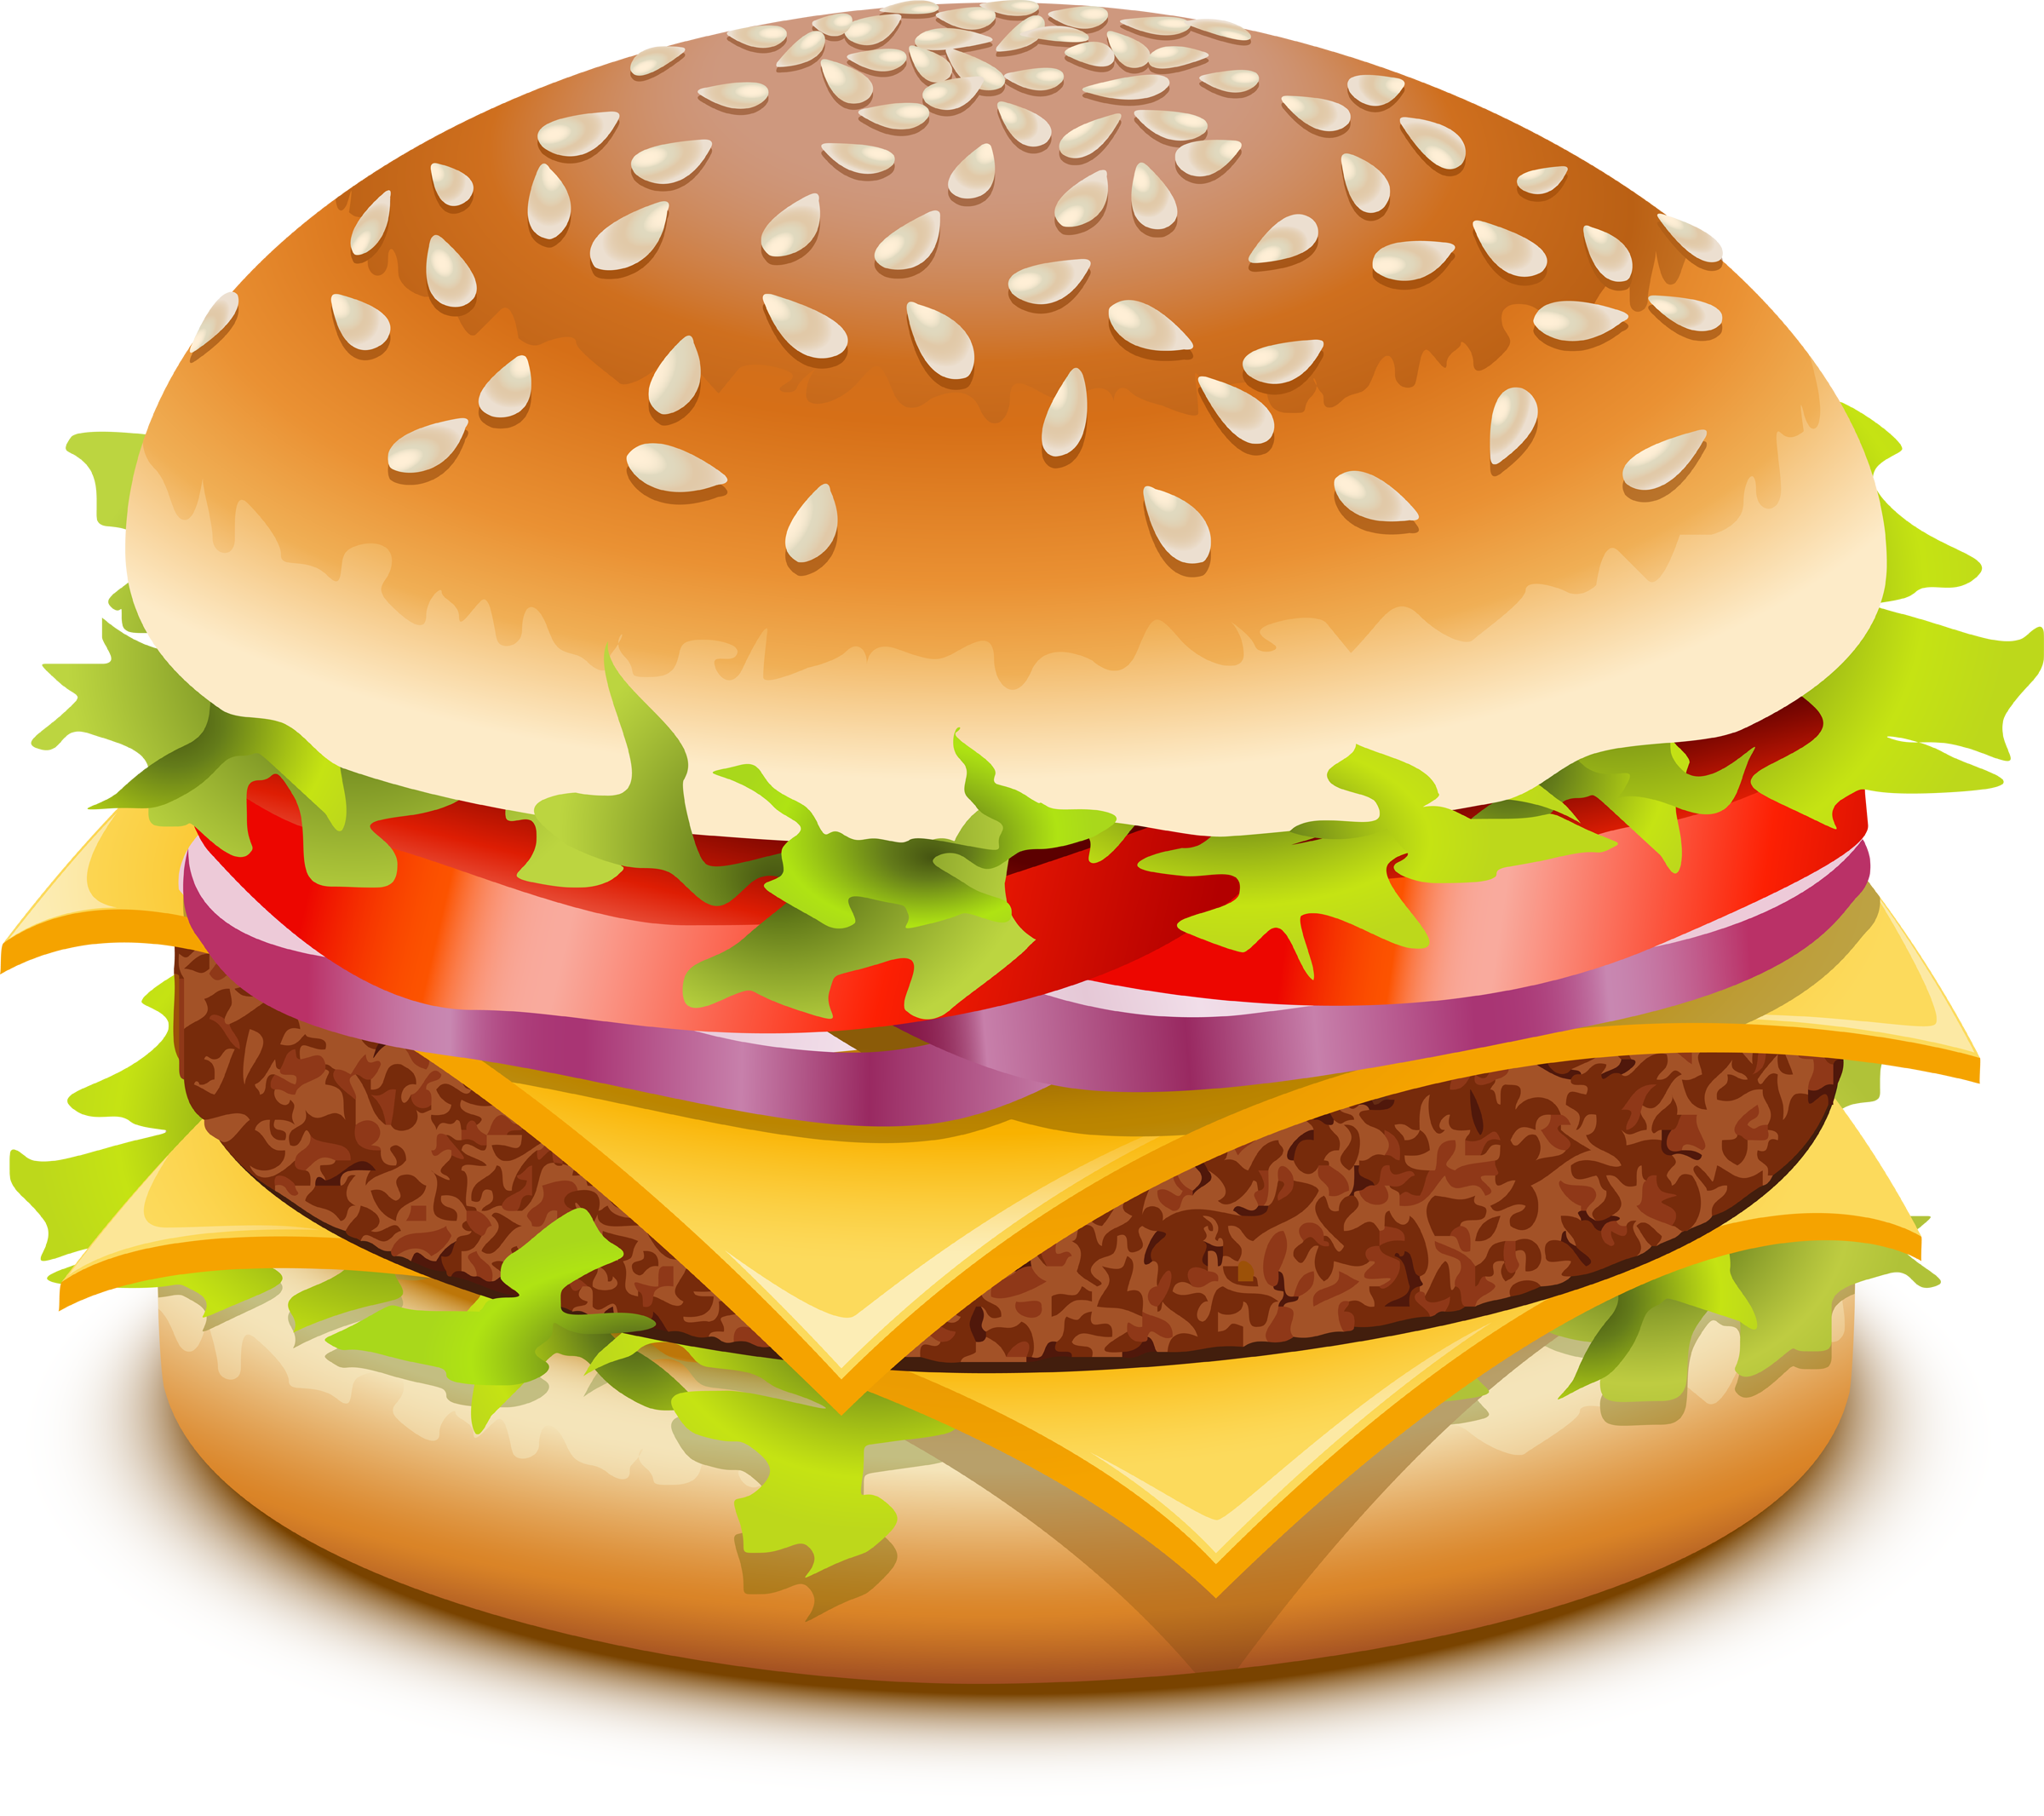 Hamburger burger and sandwich images download pictures - PNG Hamburgers Hot Dogs